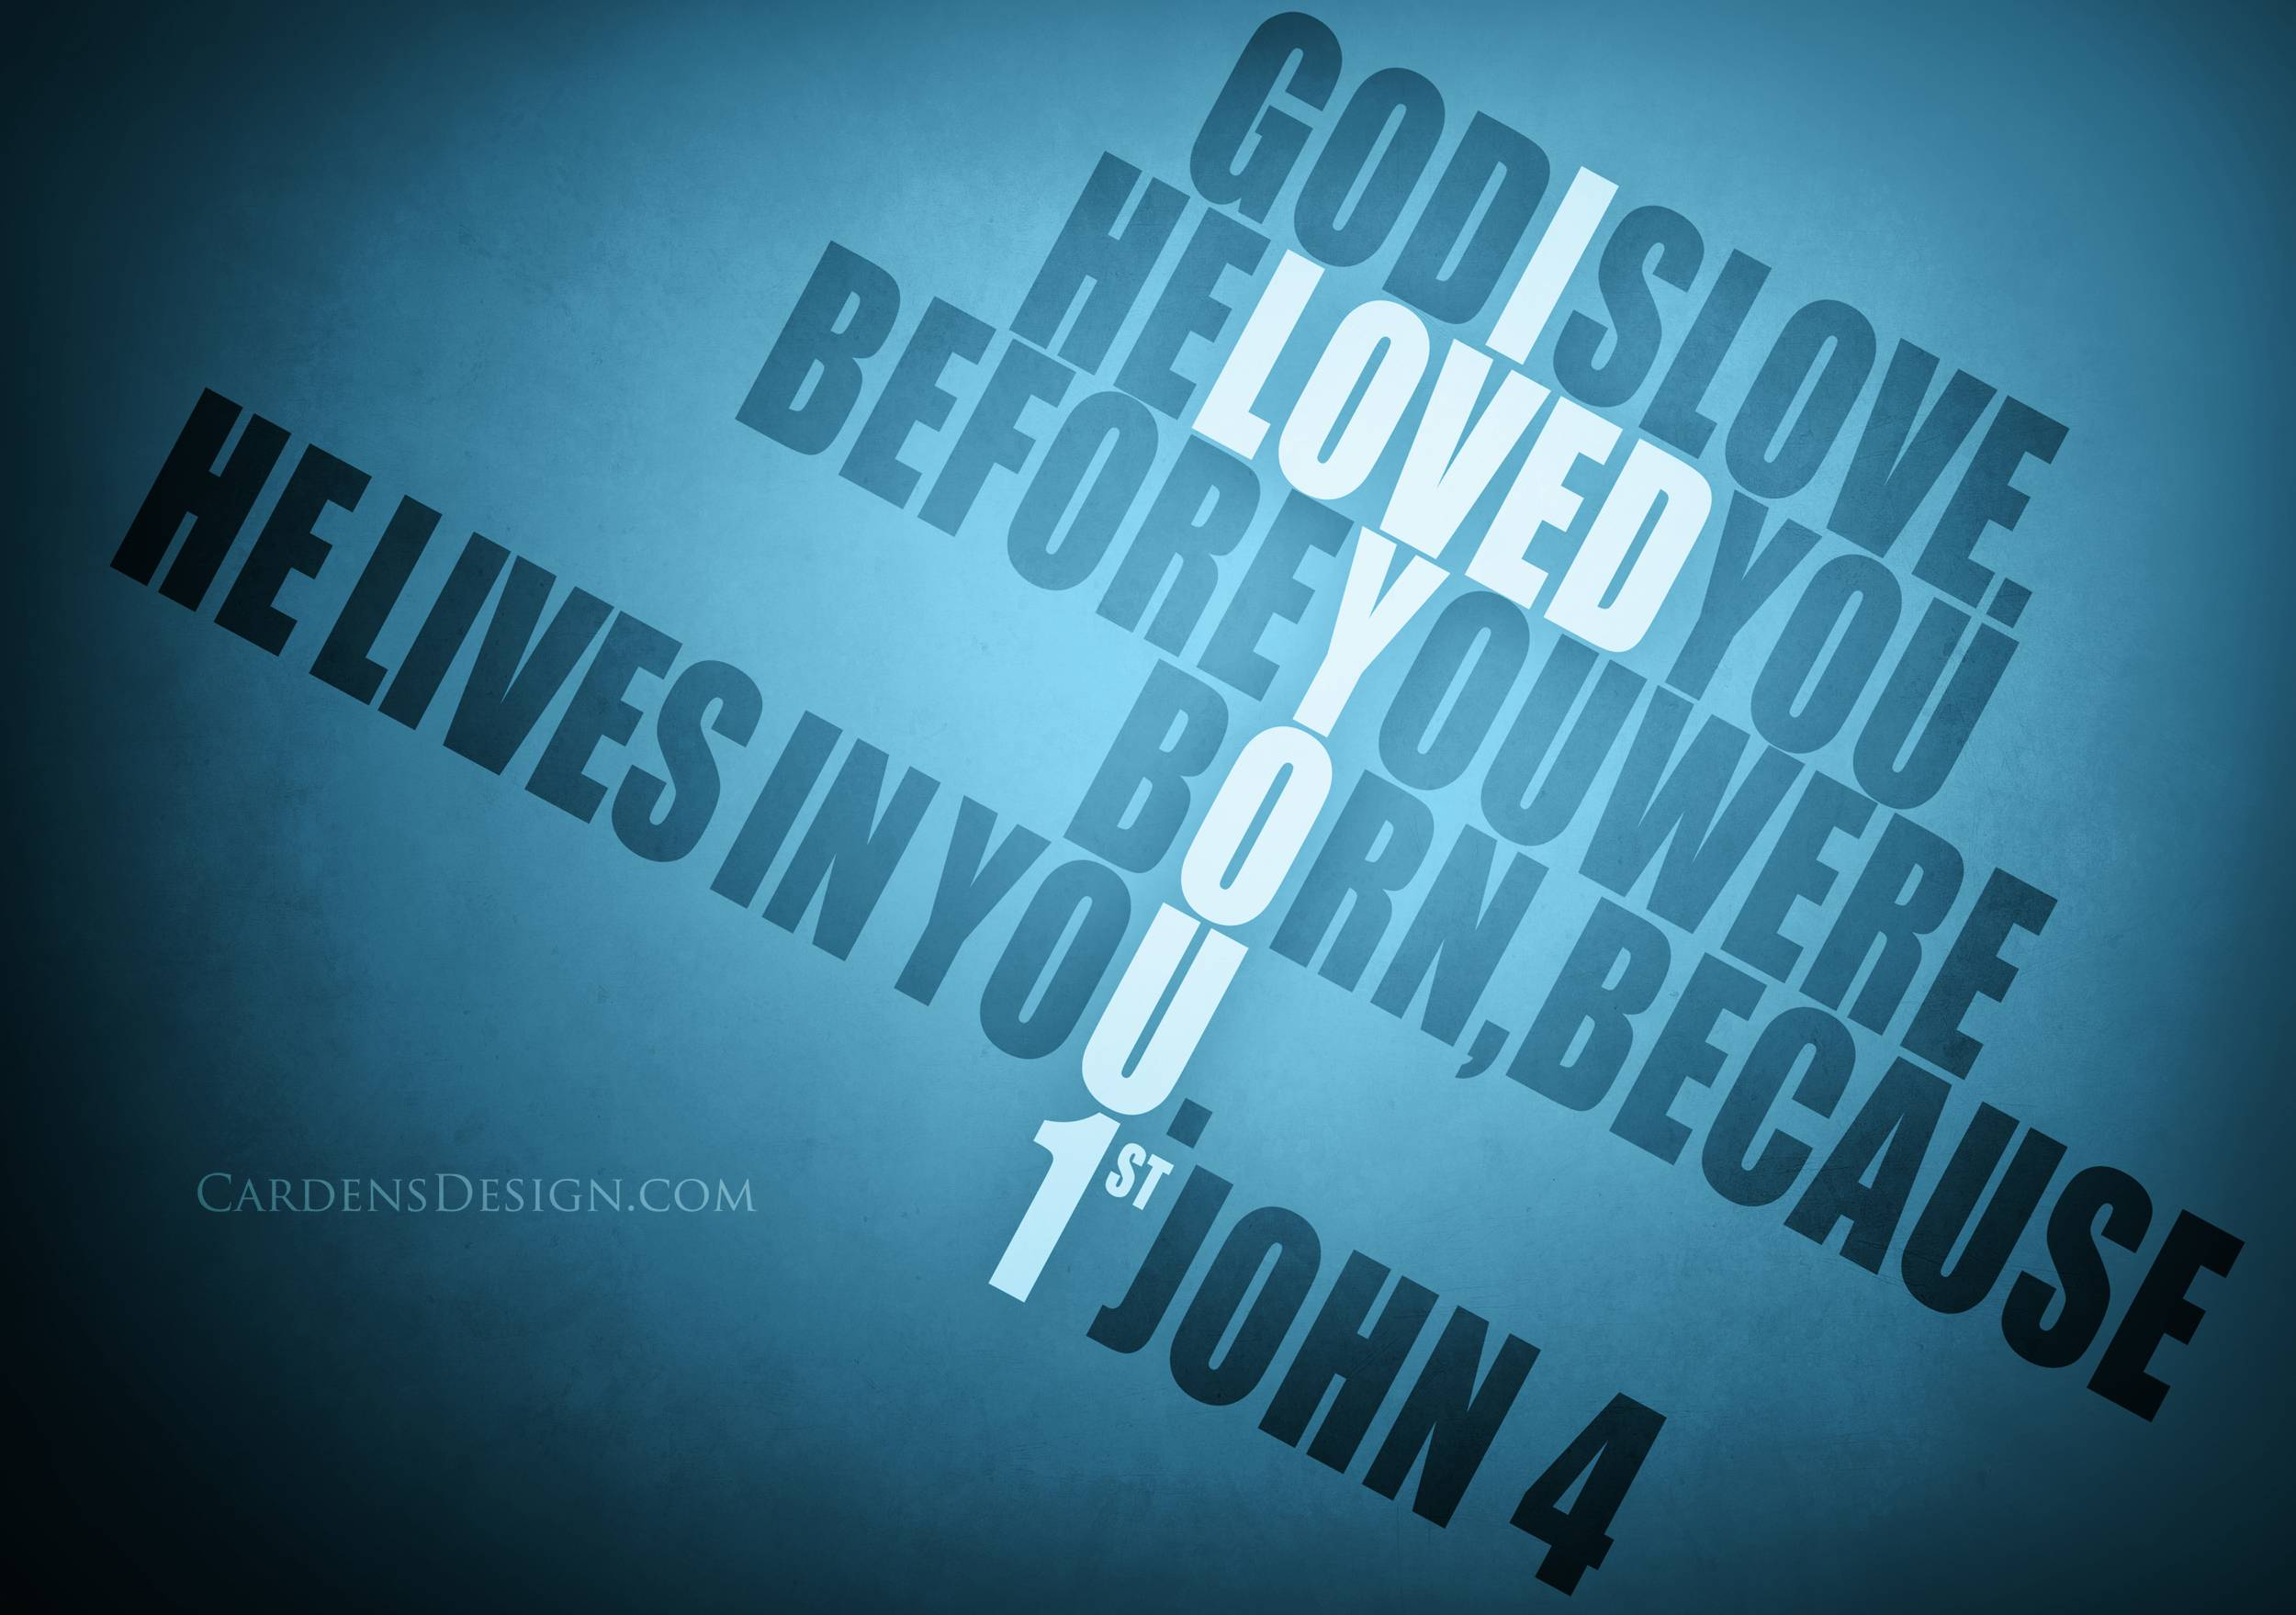 free christian wallpapers desktop backgrounds 1280x1024px